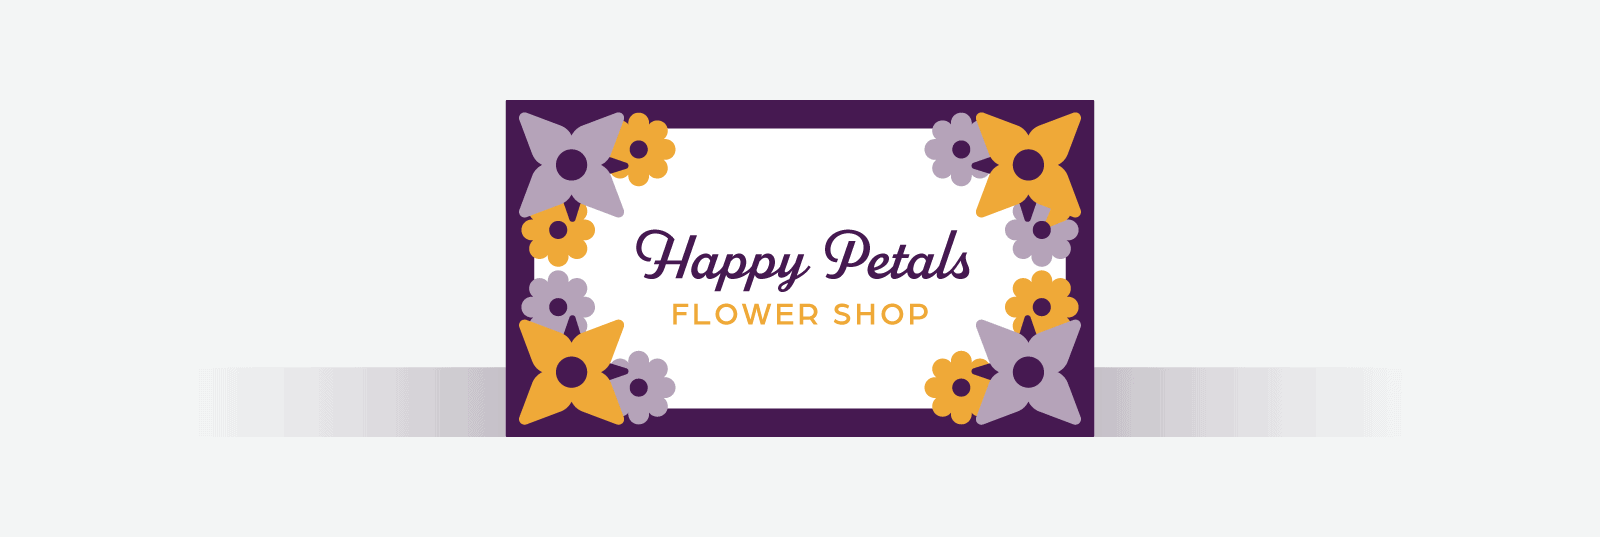 Business card with a dark purple frame and flowers